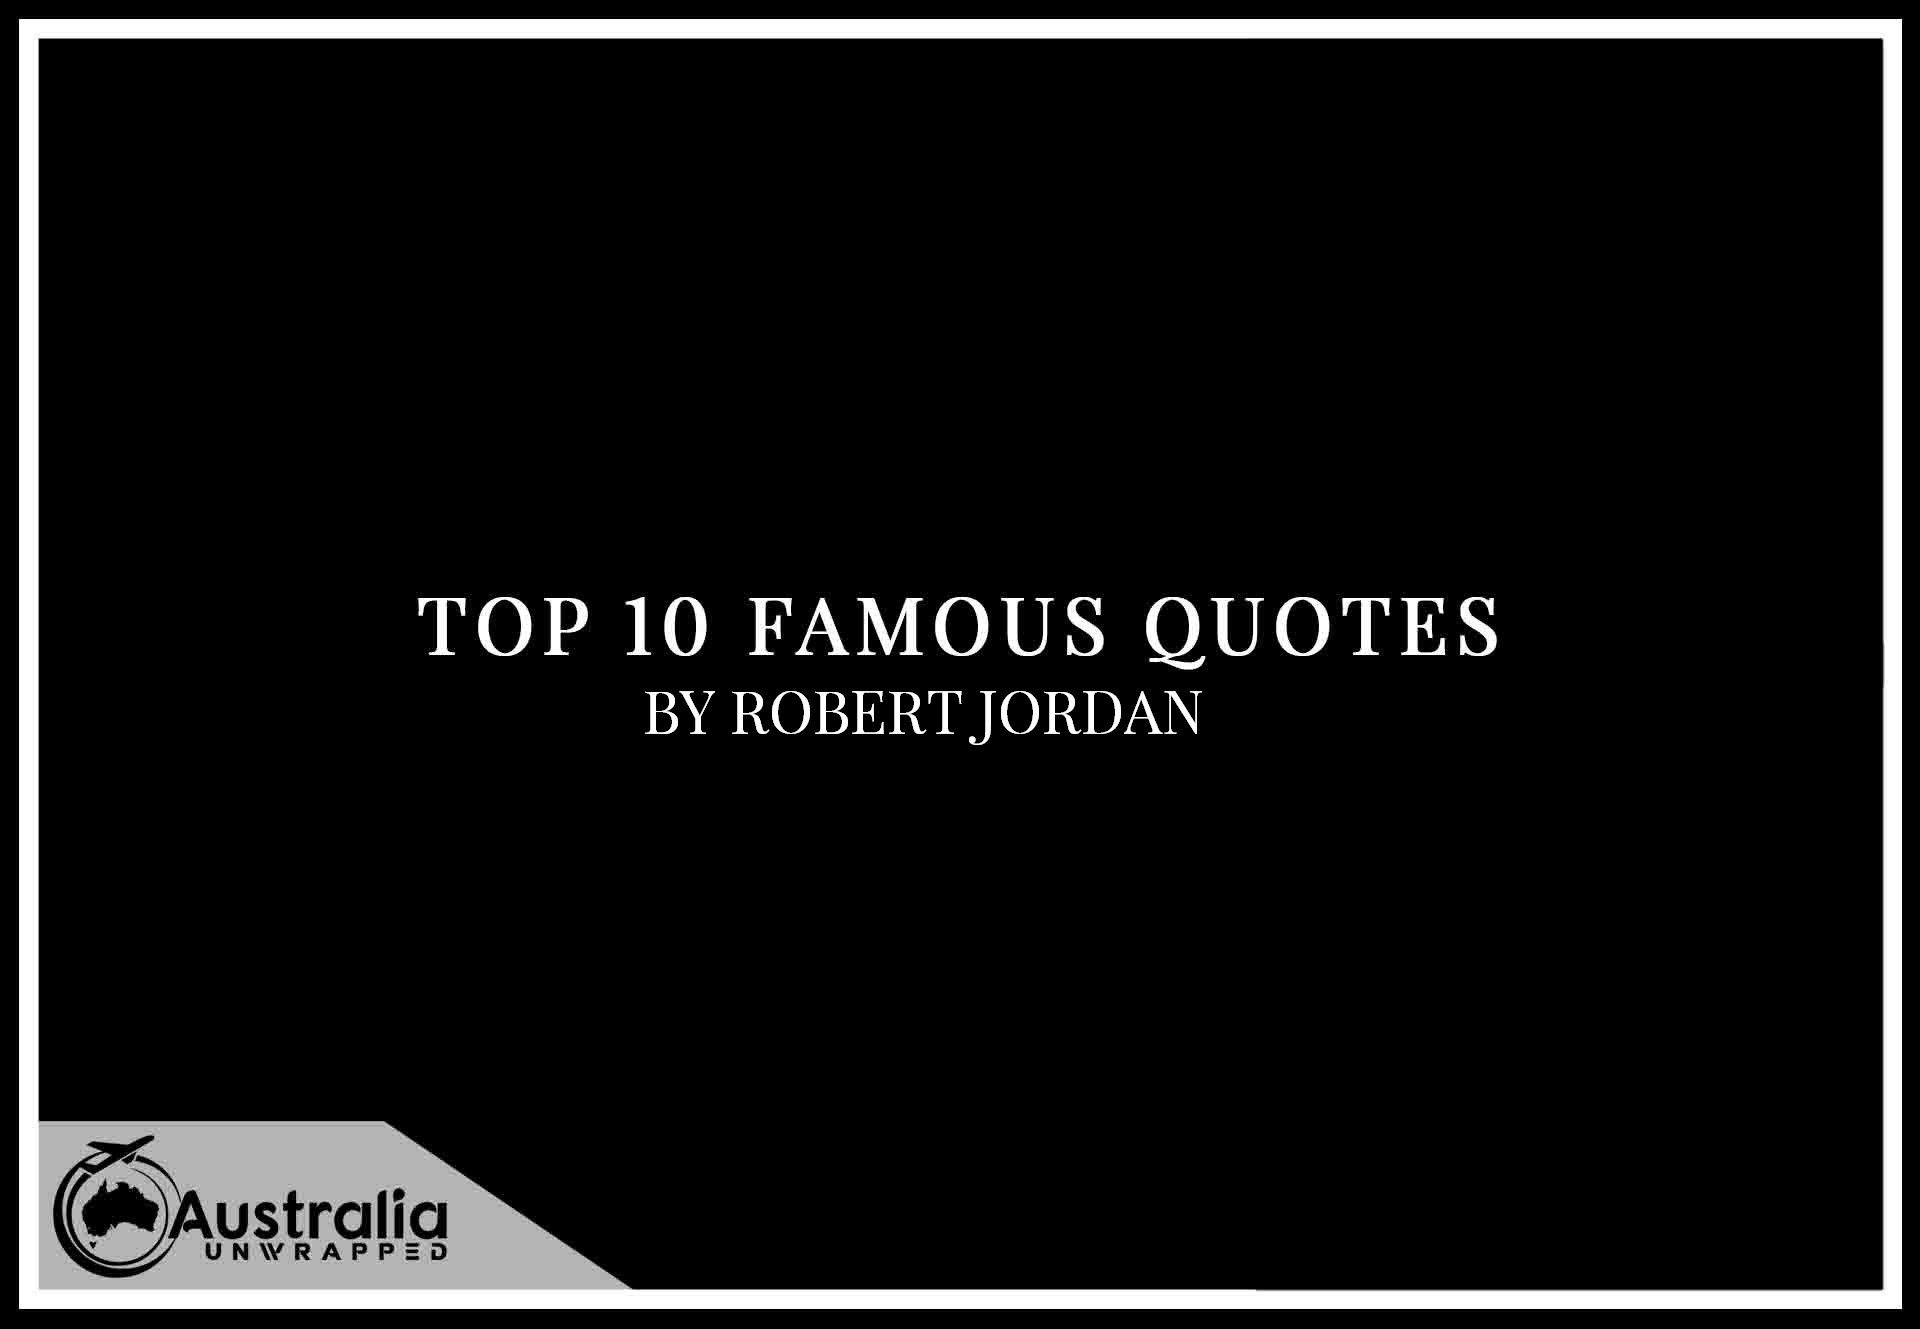 Top 10 Famous Quotes by Author Robert Jordan